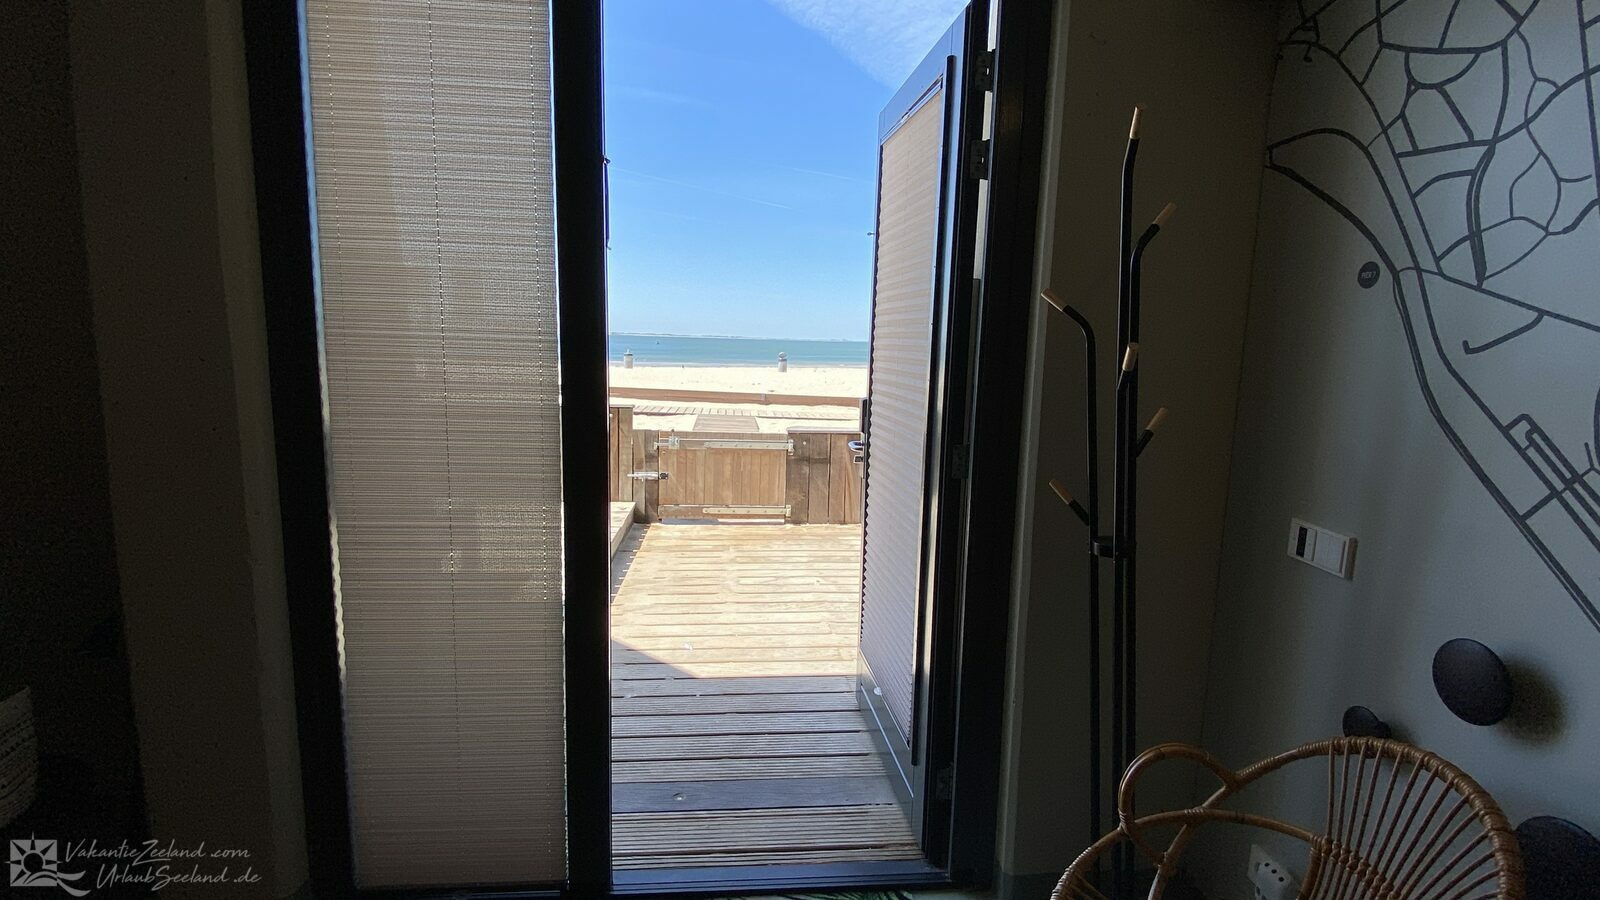 VZ676 Beach Room Vlissingen